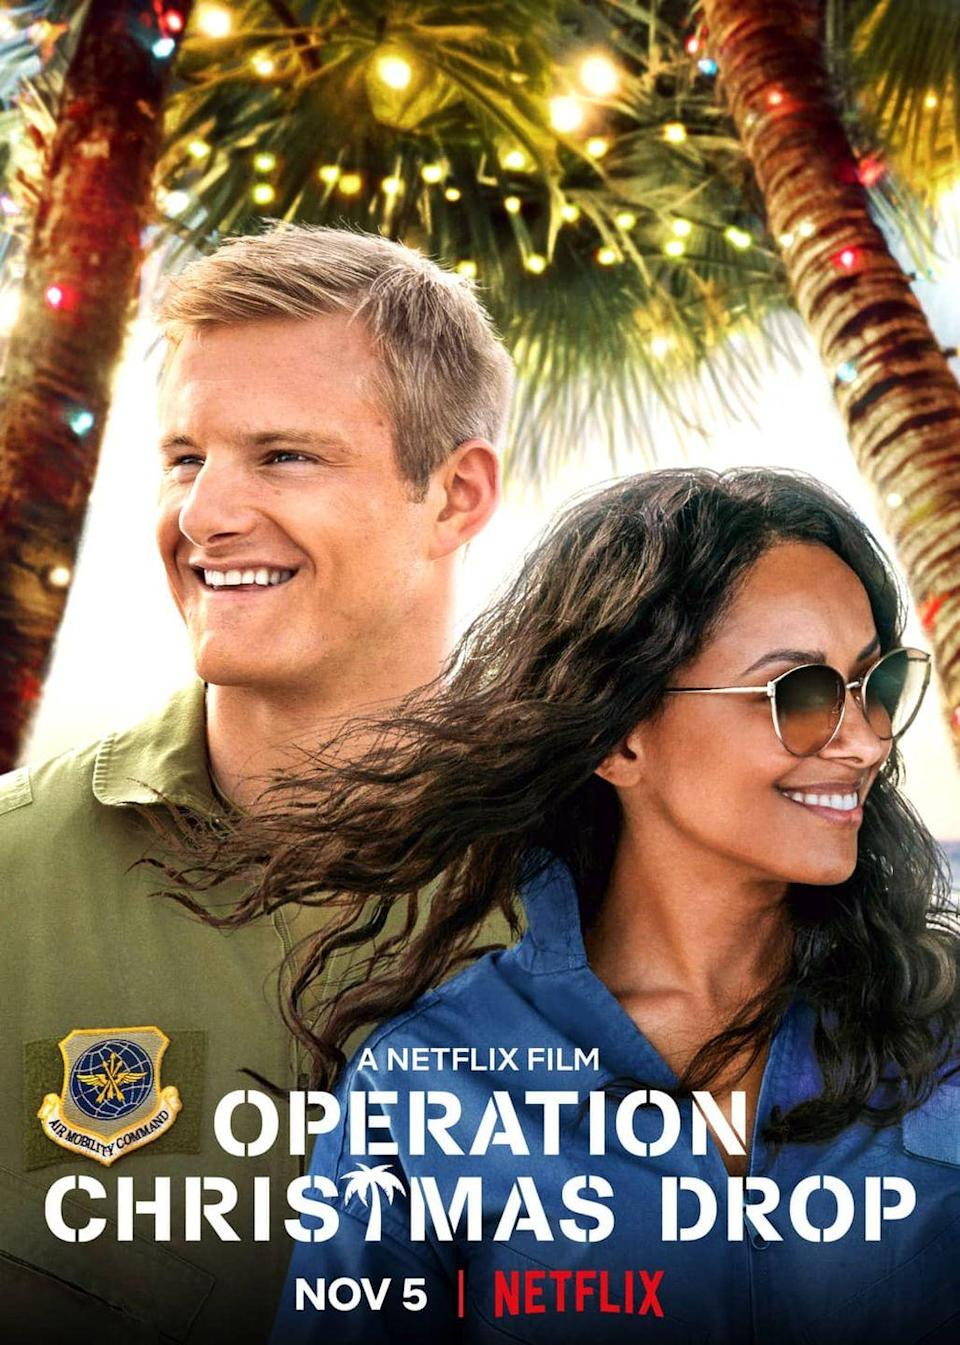 """<p>What's it take for a by-the-book Congressional aid to finally relax enough to understand the true meaning of the holidays? Nothing more than a trip to a U.S. Air Force base on a tropical island, some heartwarming moments with local kids in need, and one dashing and charismatic captain.</p><p><a class=""""link rapid-noclick-resp"""" href=""""https://www.netflix.com/title/81026186"""" rel=""""nofollow noopener"""" target=""""_blank"""" data-ylk=""""slk:Watch Now"""">Watch Now</a></p>"""